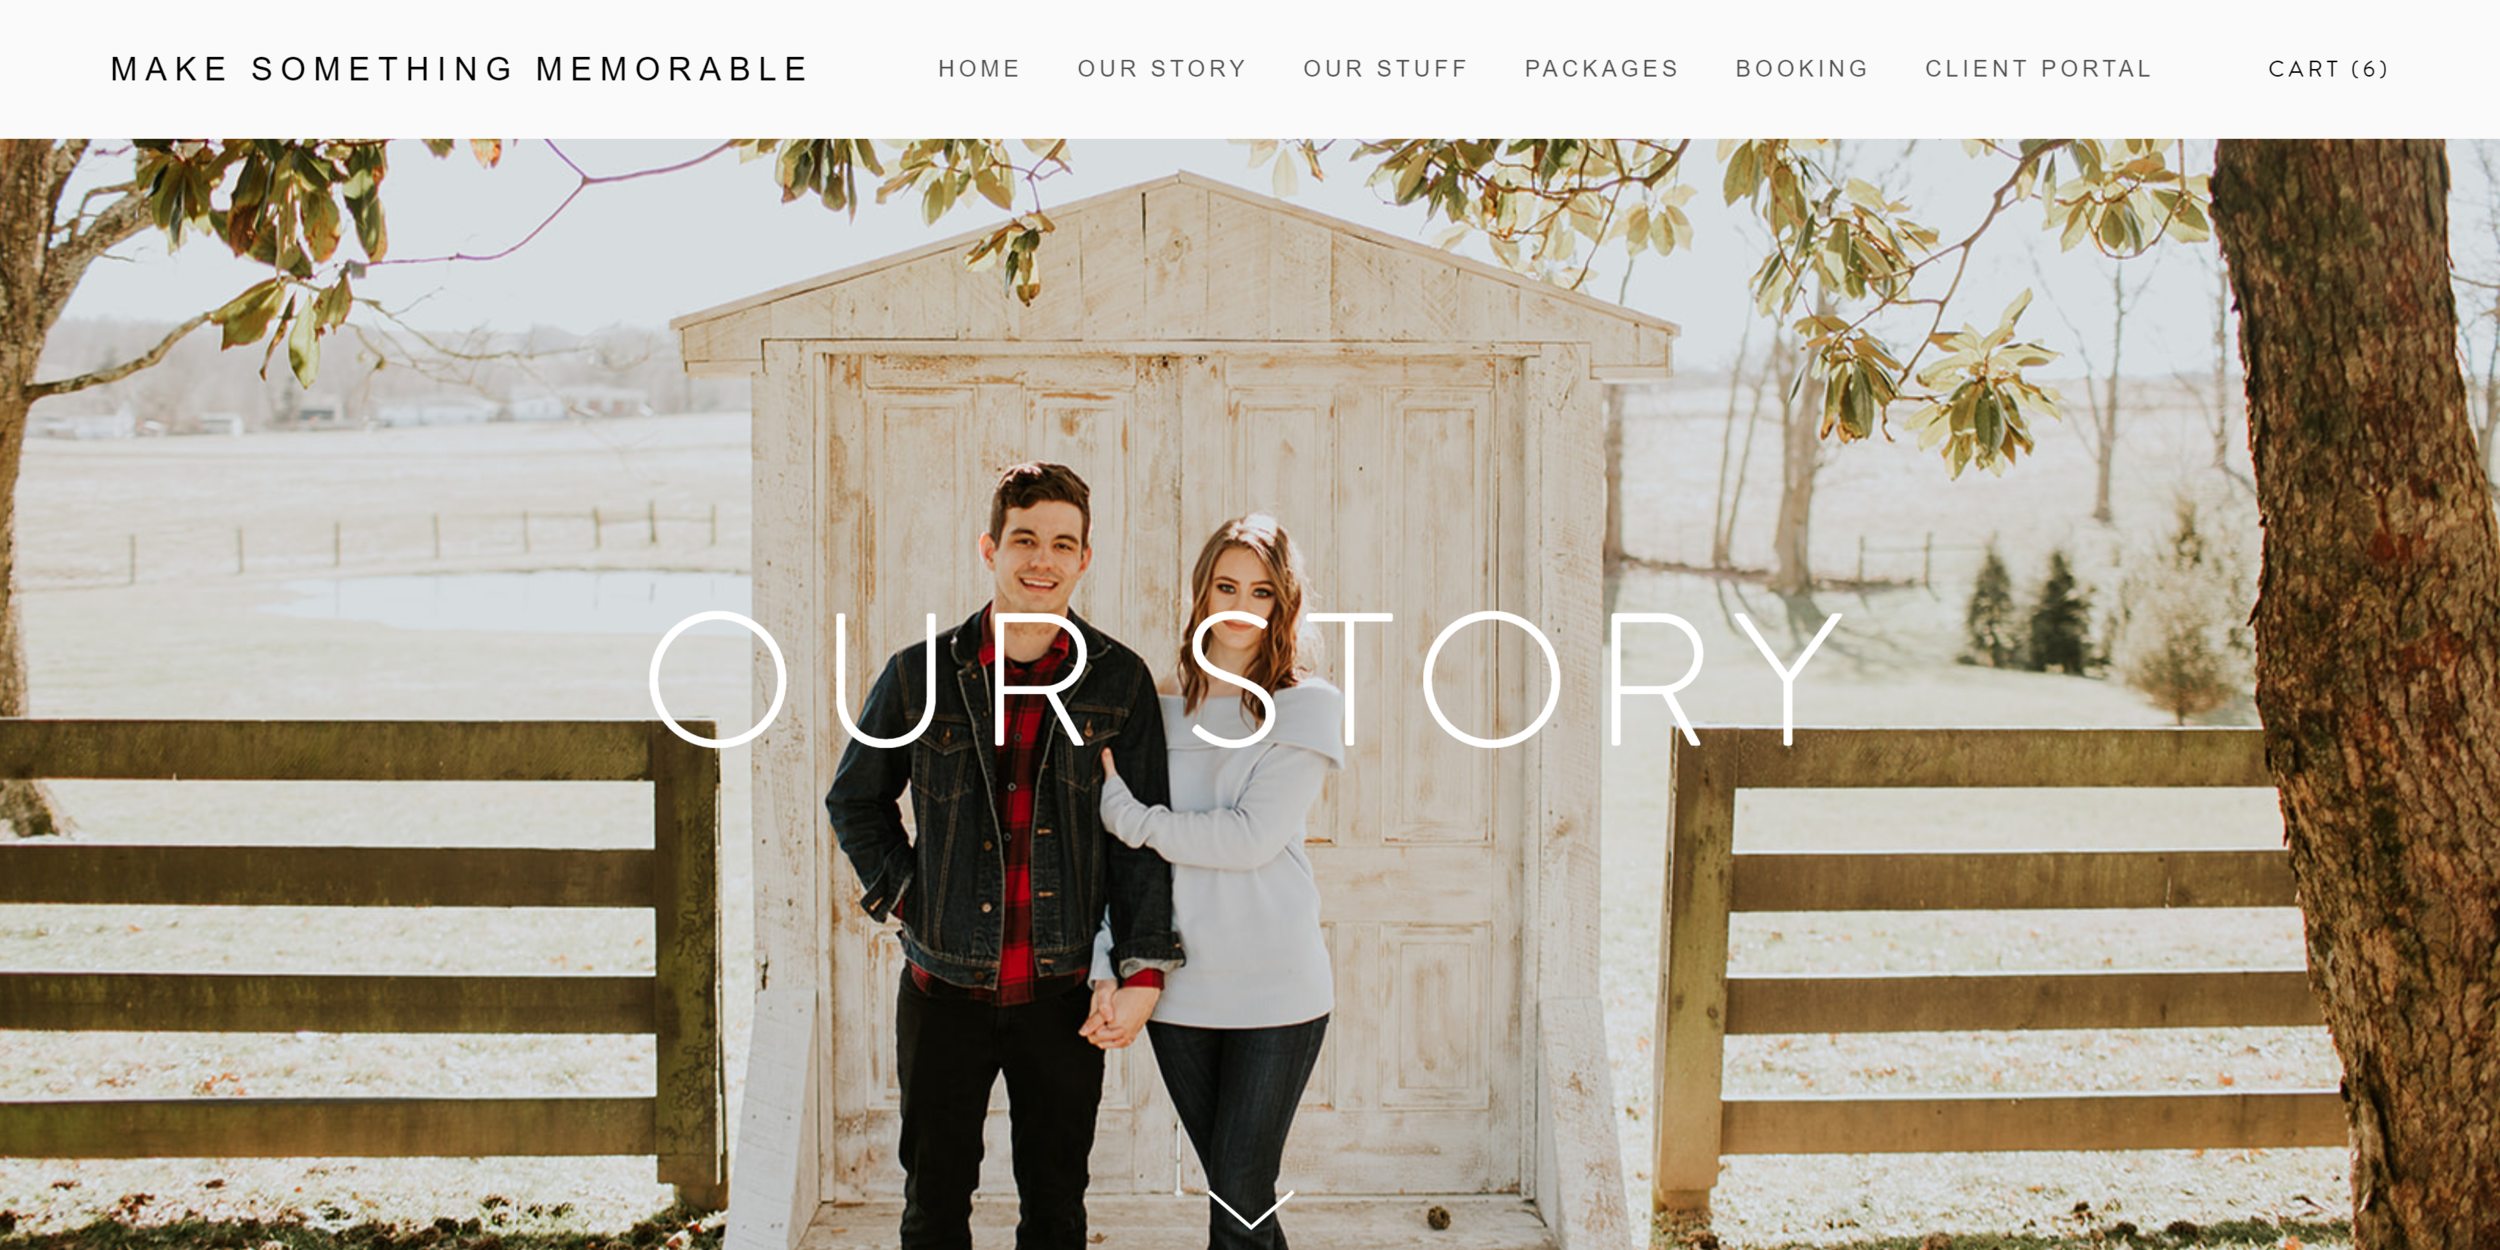 Websites - We made this site, and a few others. click here to learn more.